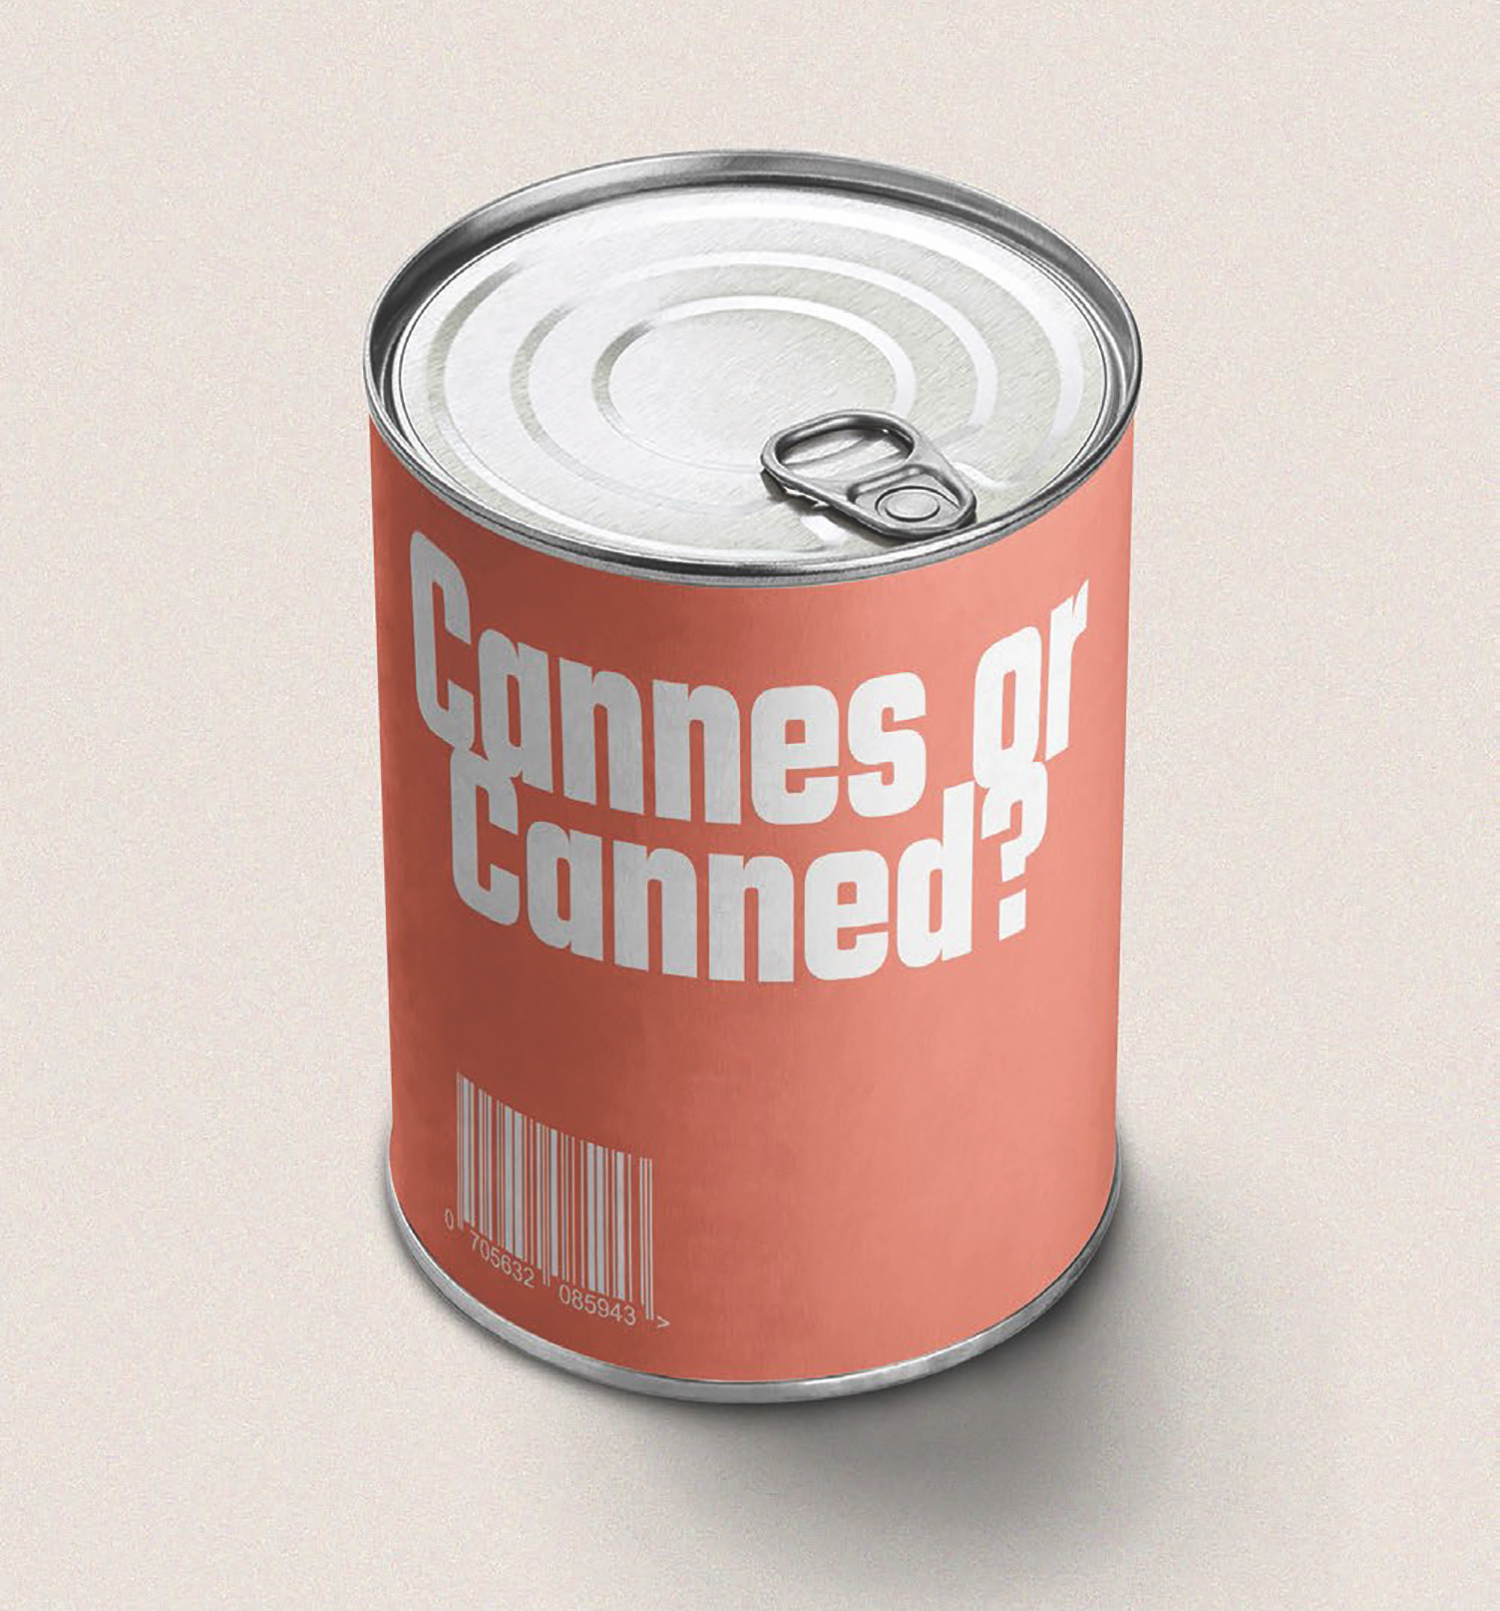 Cannes or Canned?